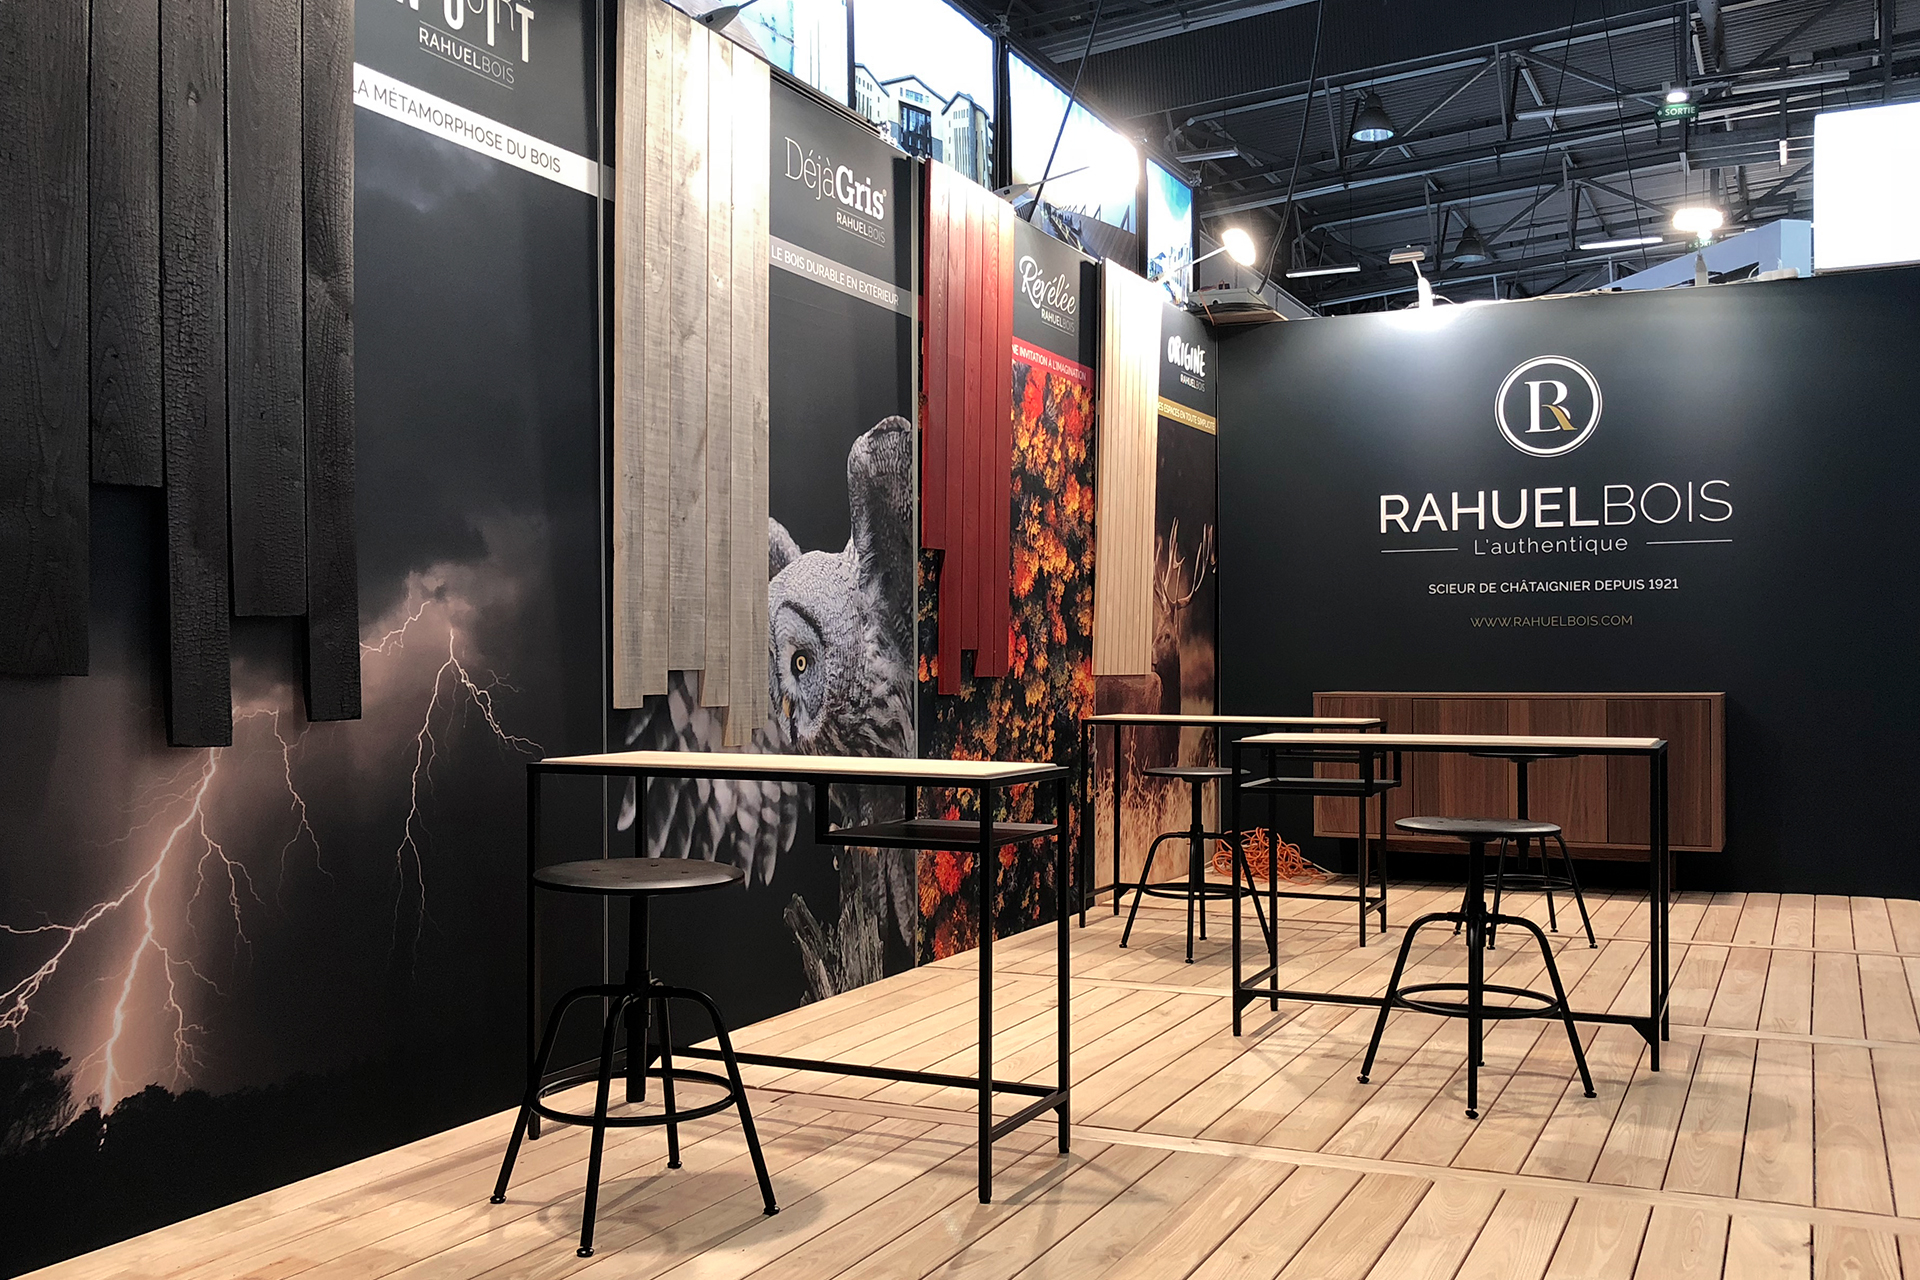 Conception stand Rahuel bois pour le carrefour international du bois 2018